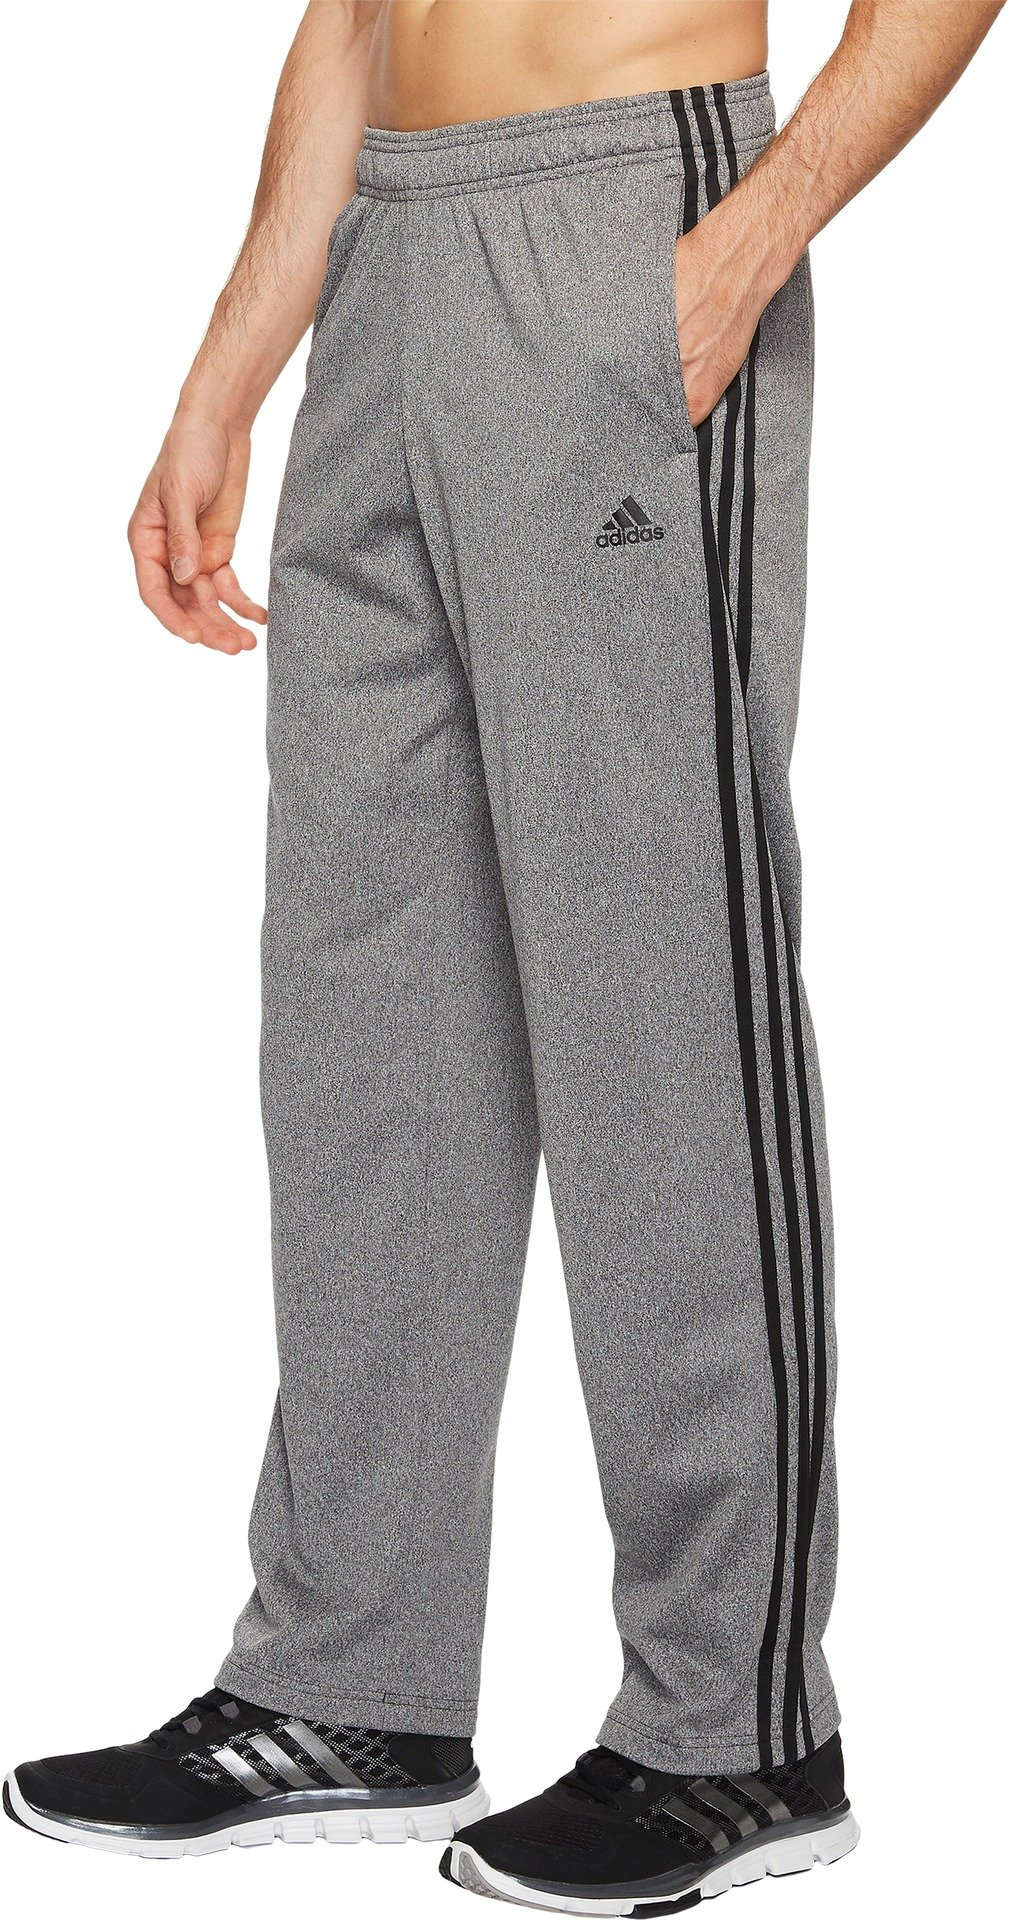 adidas Men's Essentials 3-Stripes Regular Fit Tricot Pants DGH Solid Grey/Black XX-Large S